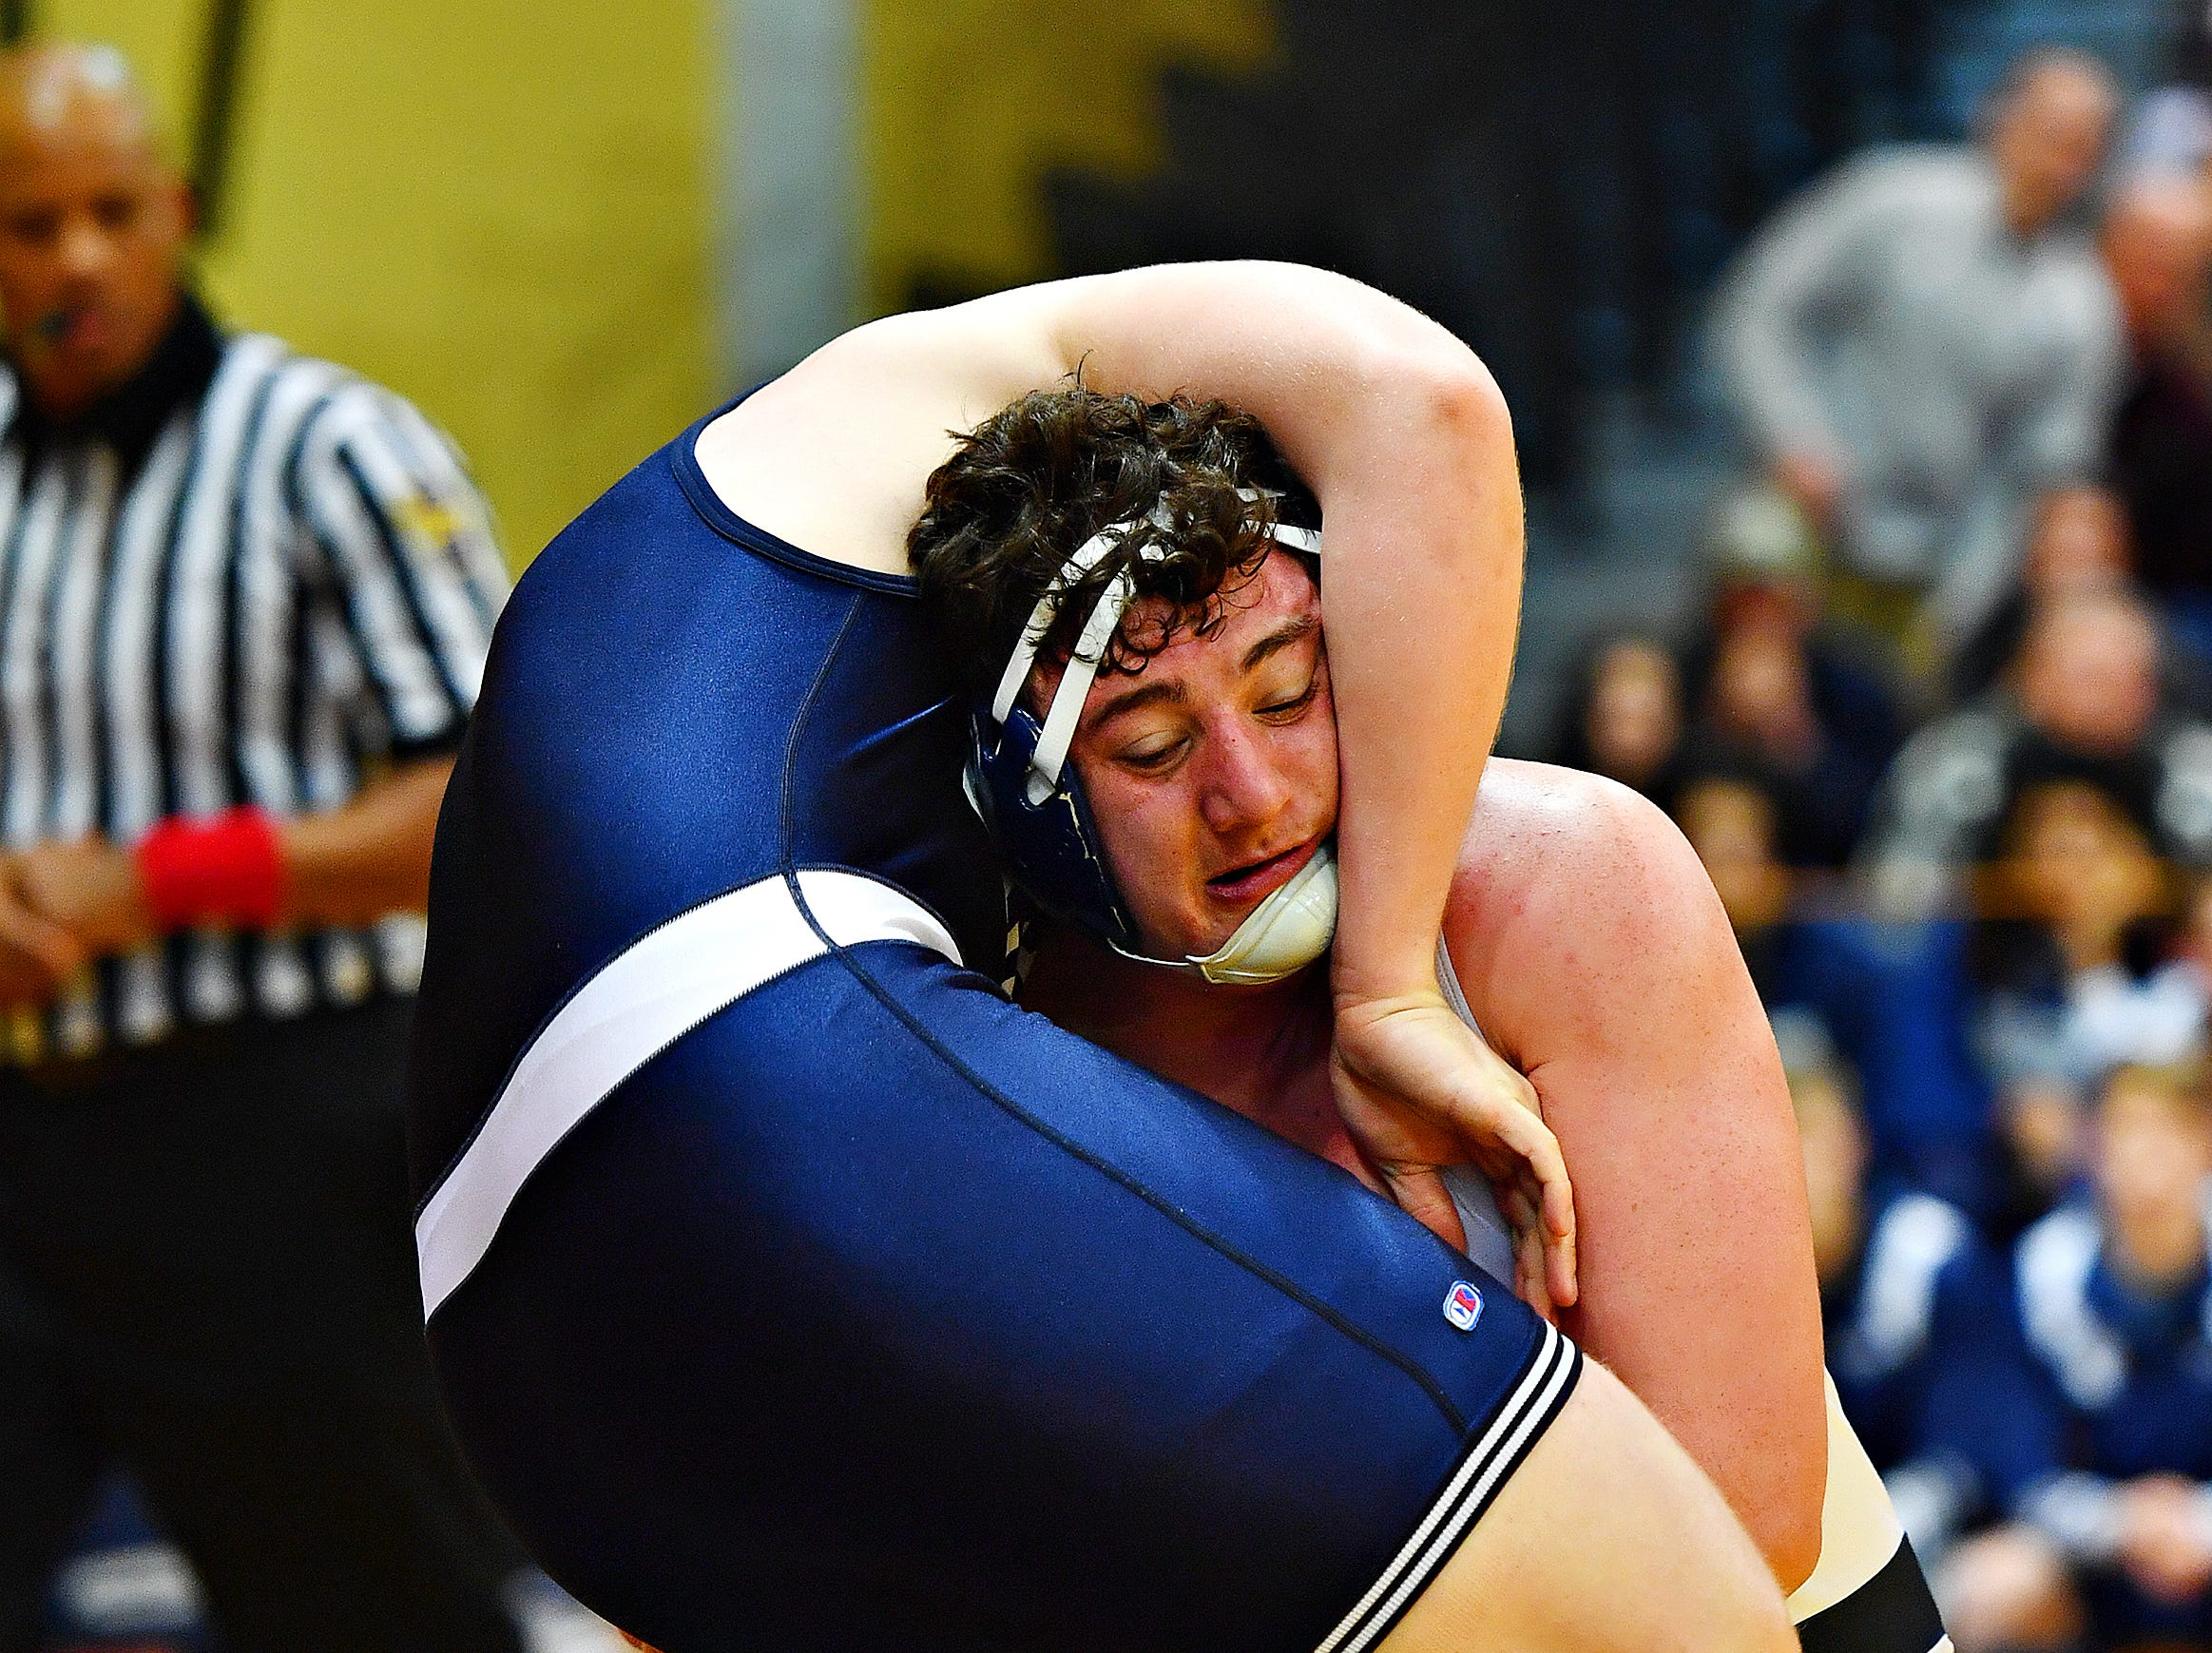 Dallastown's Raymond Christas, back, wrestles Cedar Cliff's Anthony Shires in the 285 pound weight class during District 3, Class 3A wrestling championship action at Milton Hershey High School in Hershey, Saturday, Feb. 2, 2019. Dawn J. Sagert photo